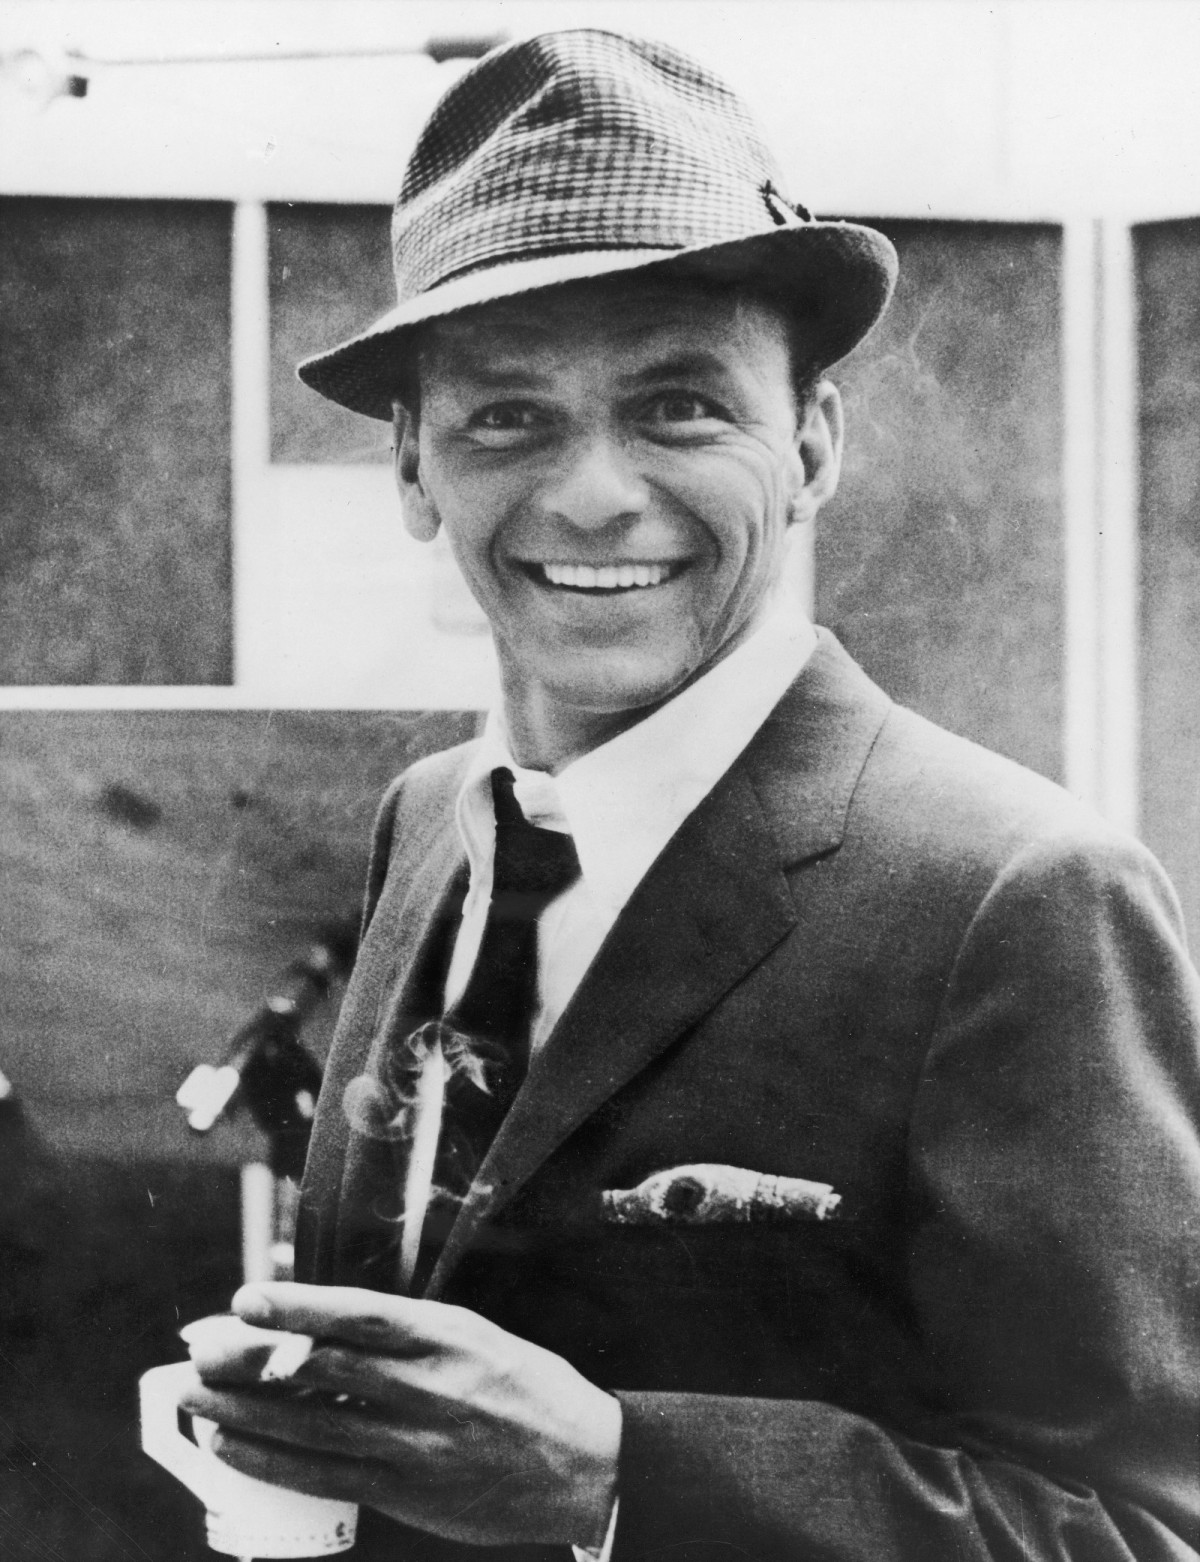 American singer and actor Frank Sinatra (1915 - 1998) smiles while holding a cigarette and a cup of coffee in a recording studio, 1950s. (Photo by Hulton Archive/Getty Images)